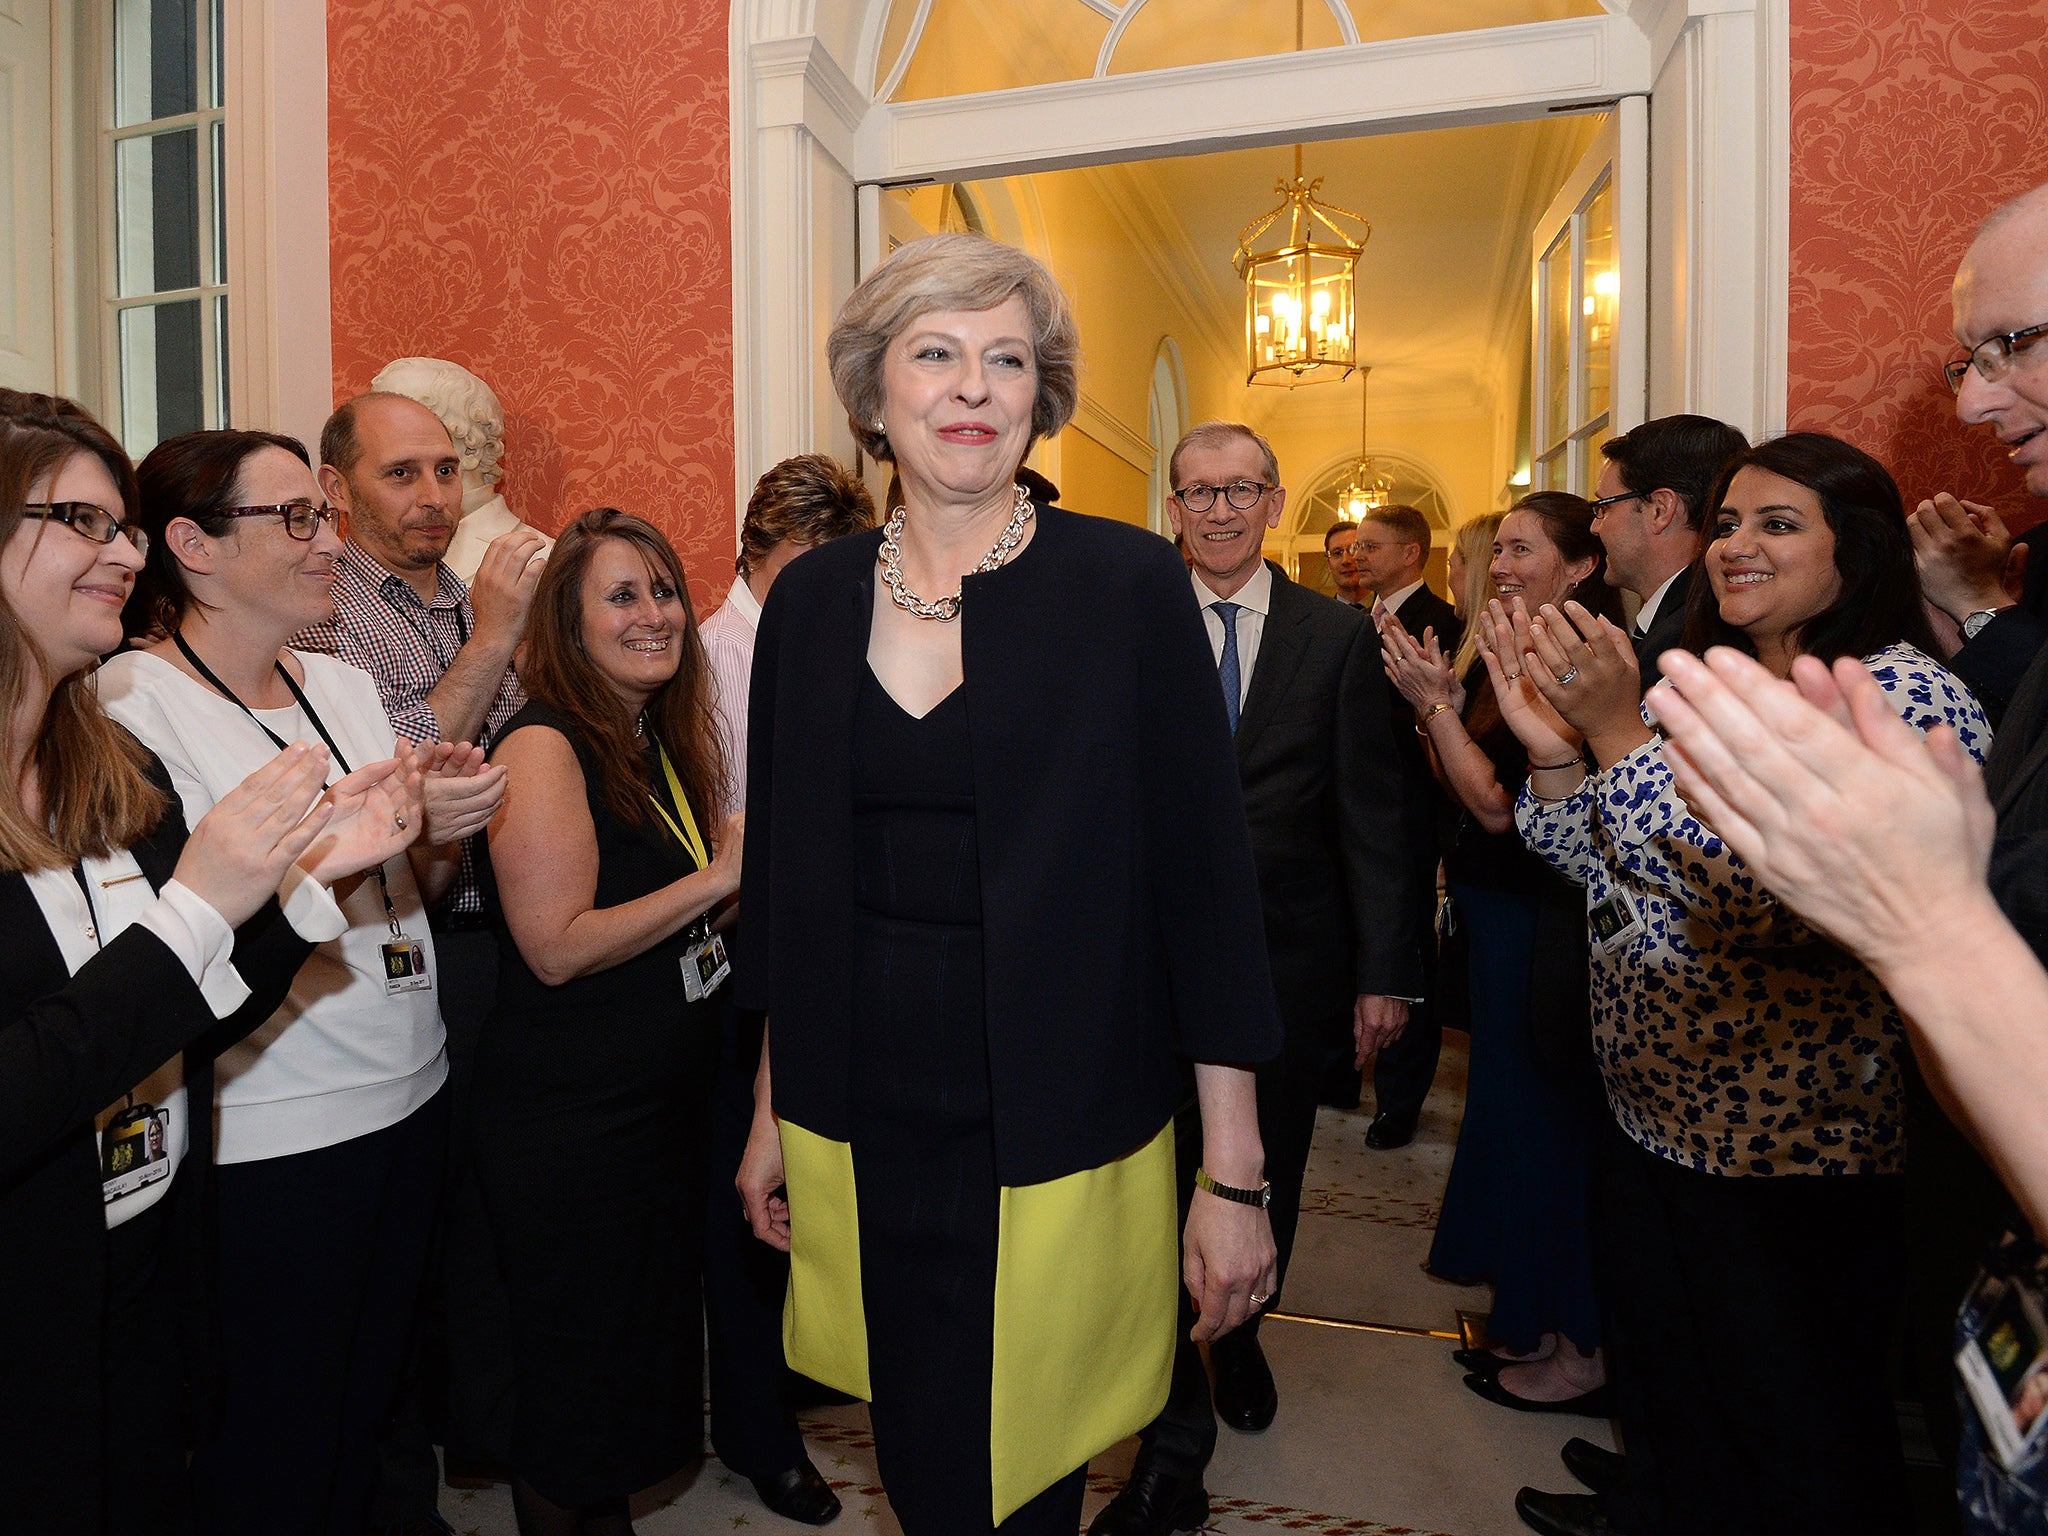 Theresa May's Cabinet: Who's in and who's out? The latest updates ...